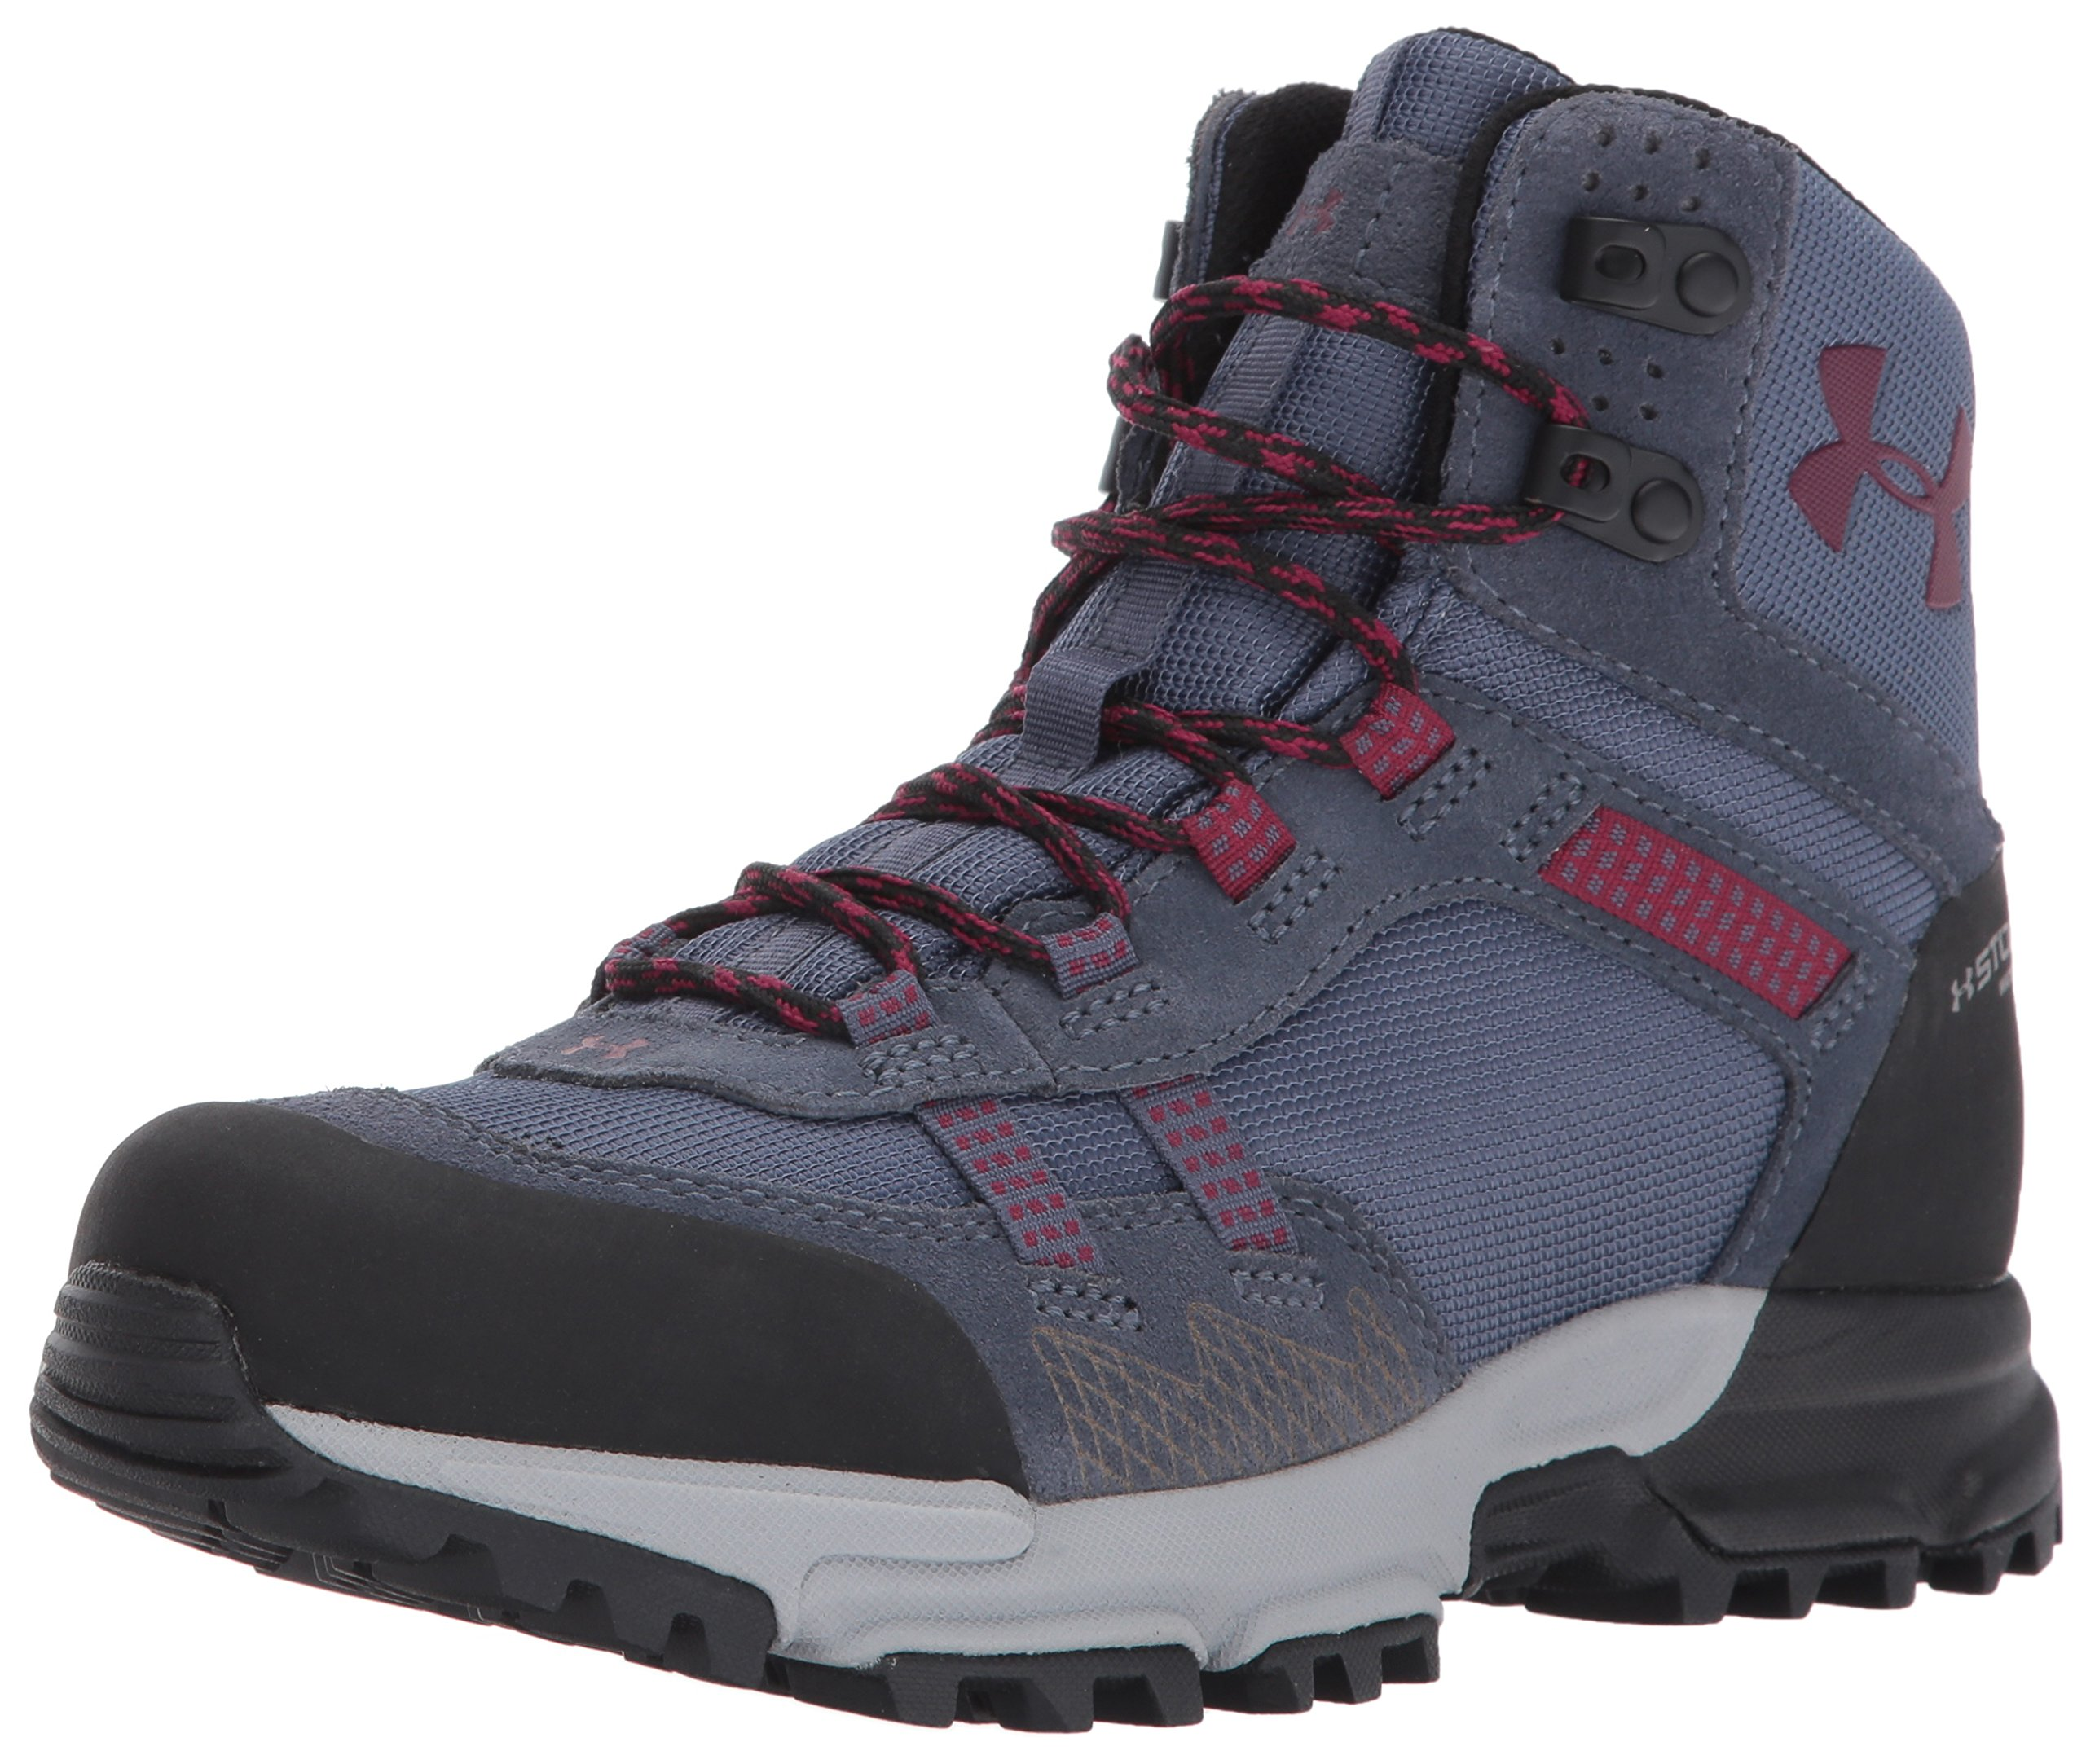 Under Armour Women's Post Canyon Mid Waterproof Hiking Boot, Apollo Gray (962)/Overcast Gray, 9